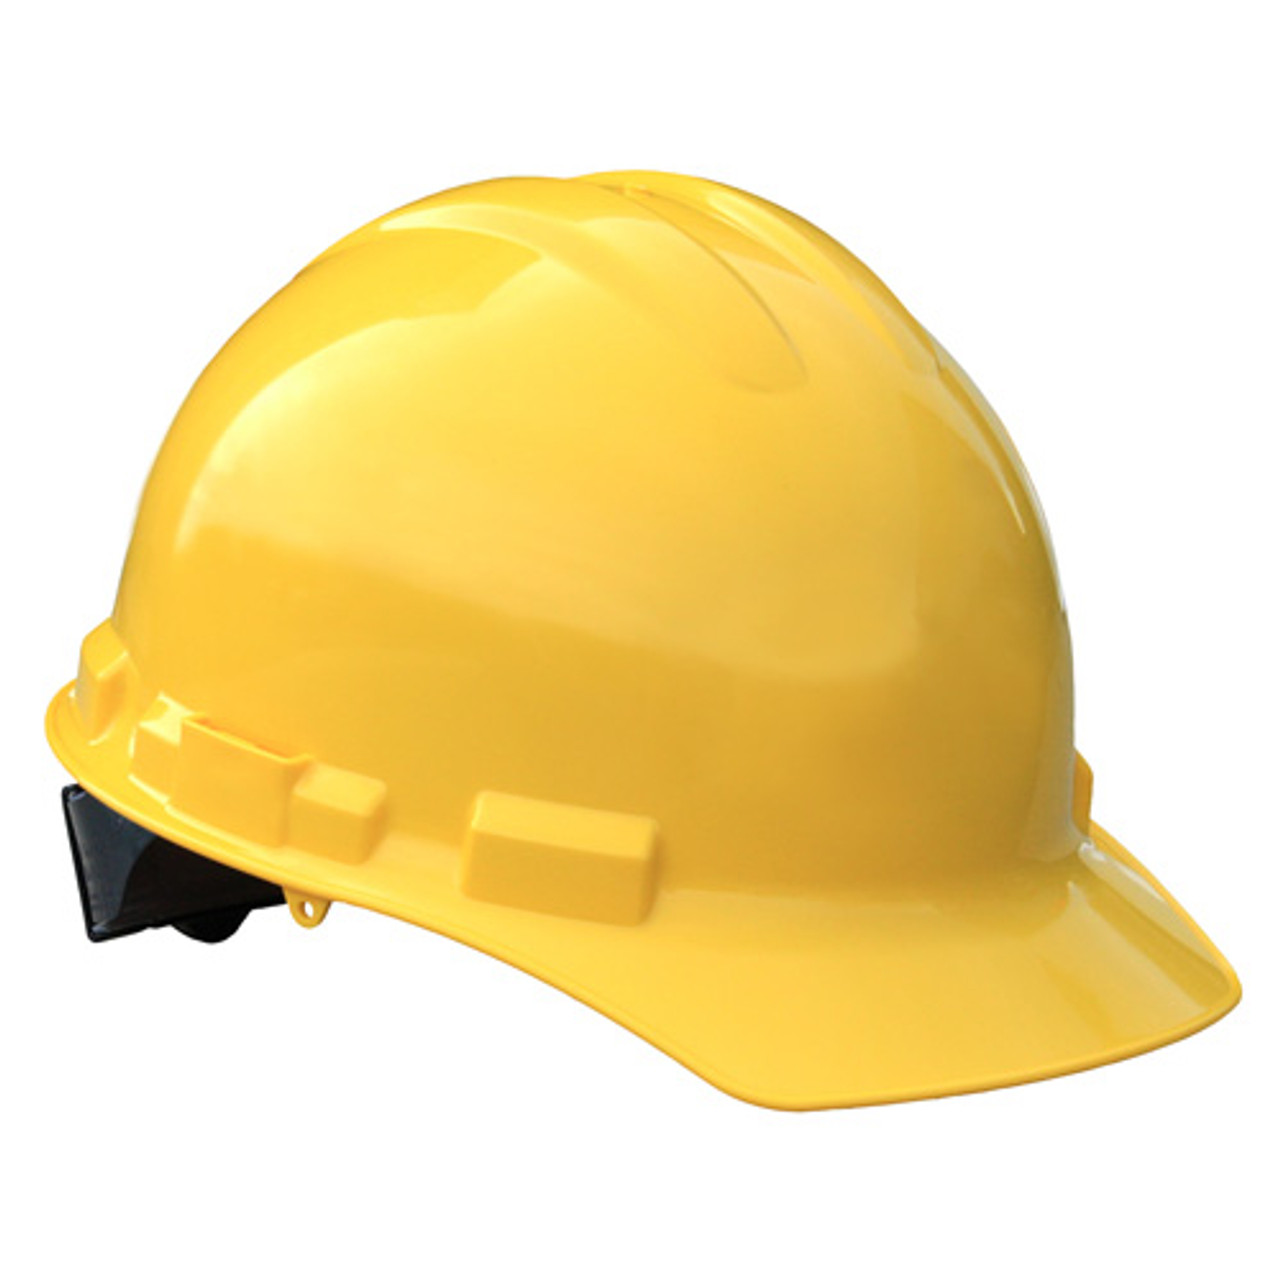 Yellow Radians Hard Hat with Ratchet Suspension Made in The USA